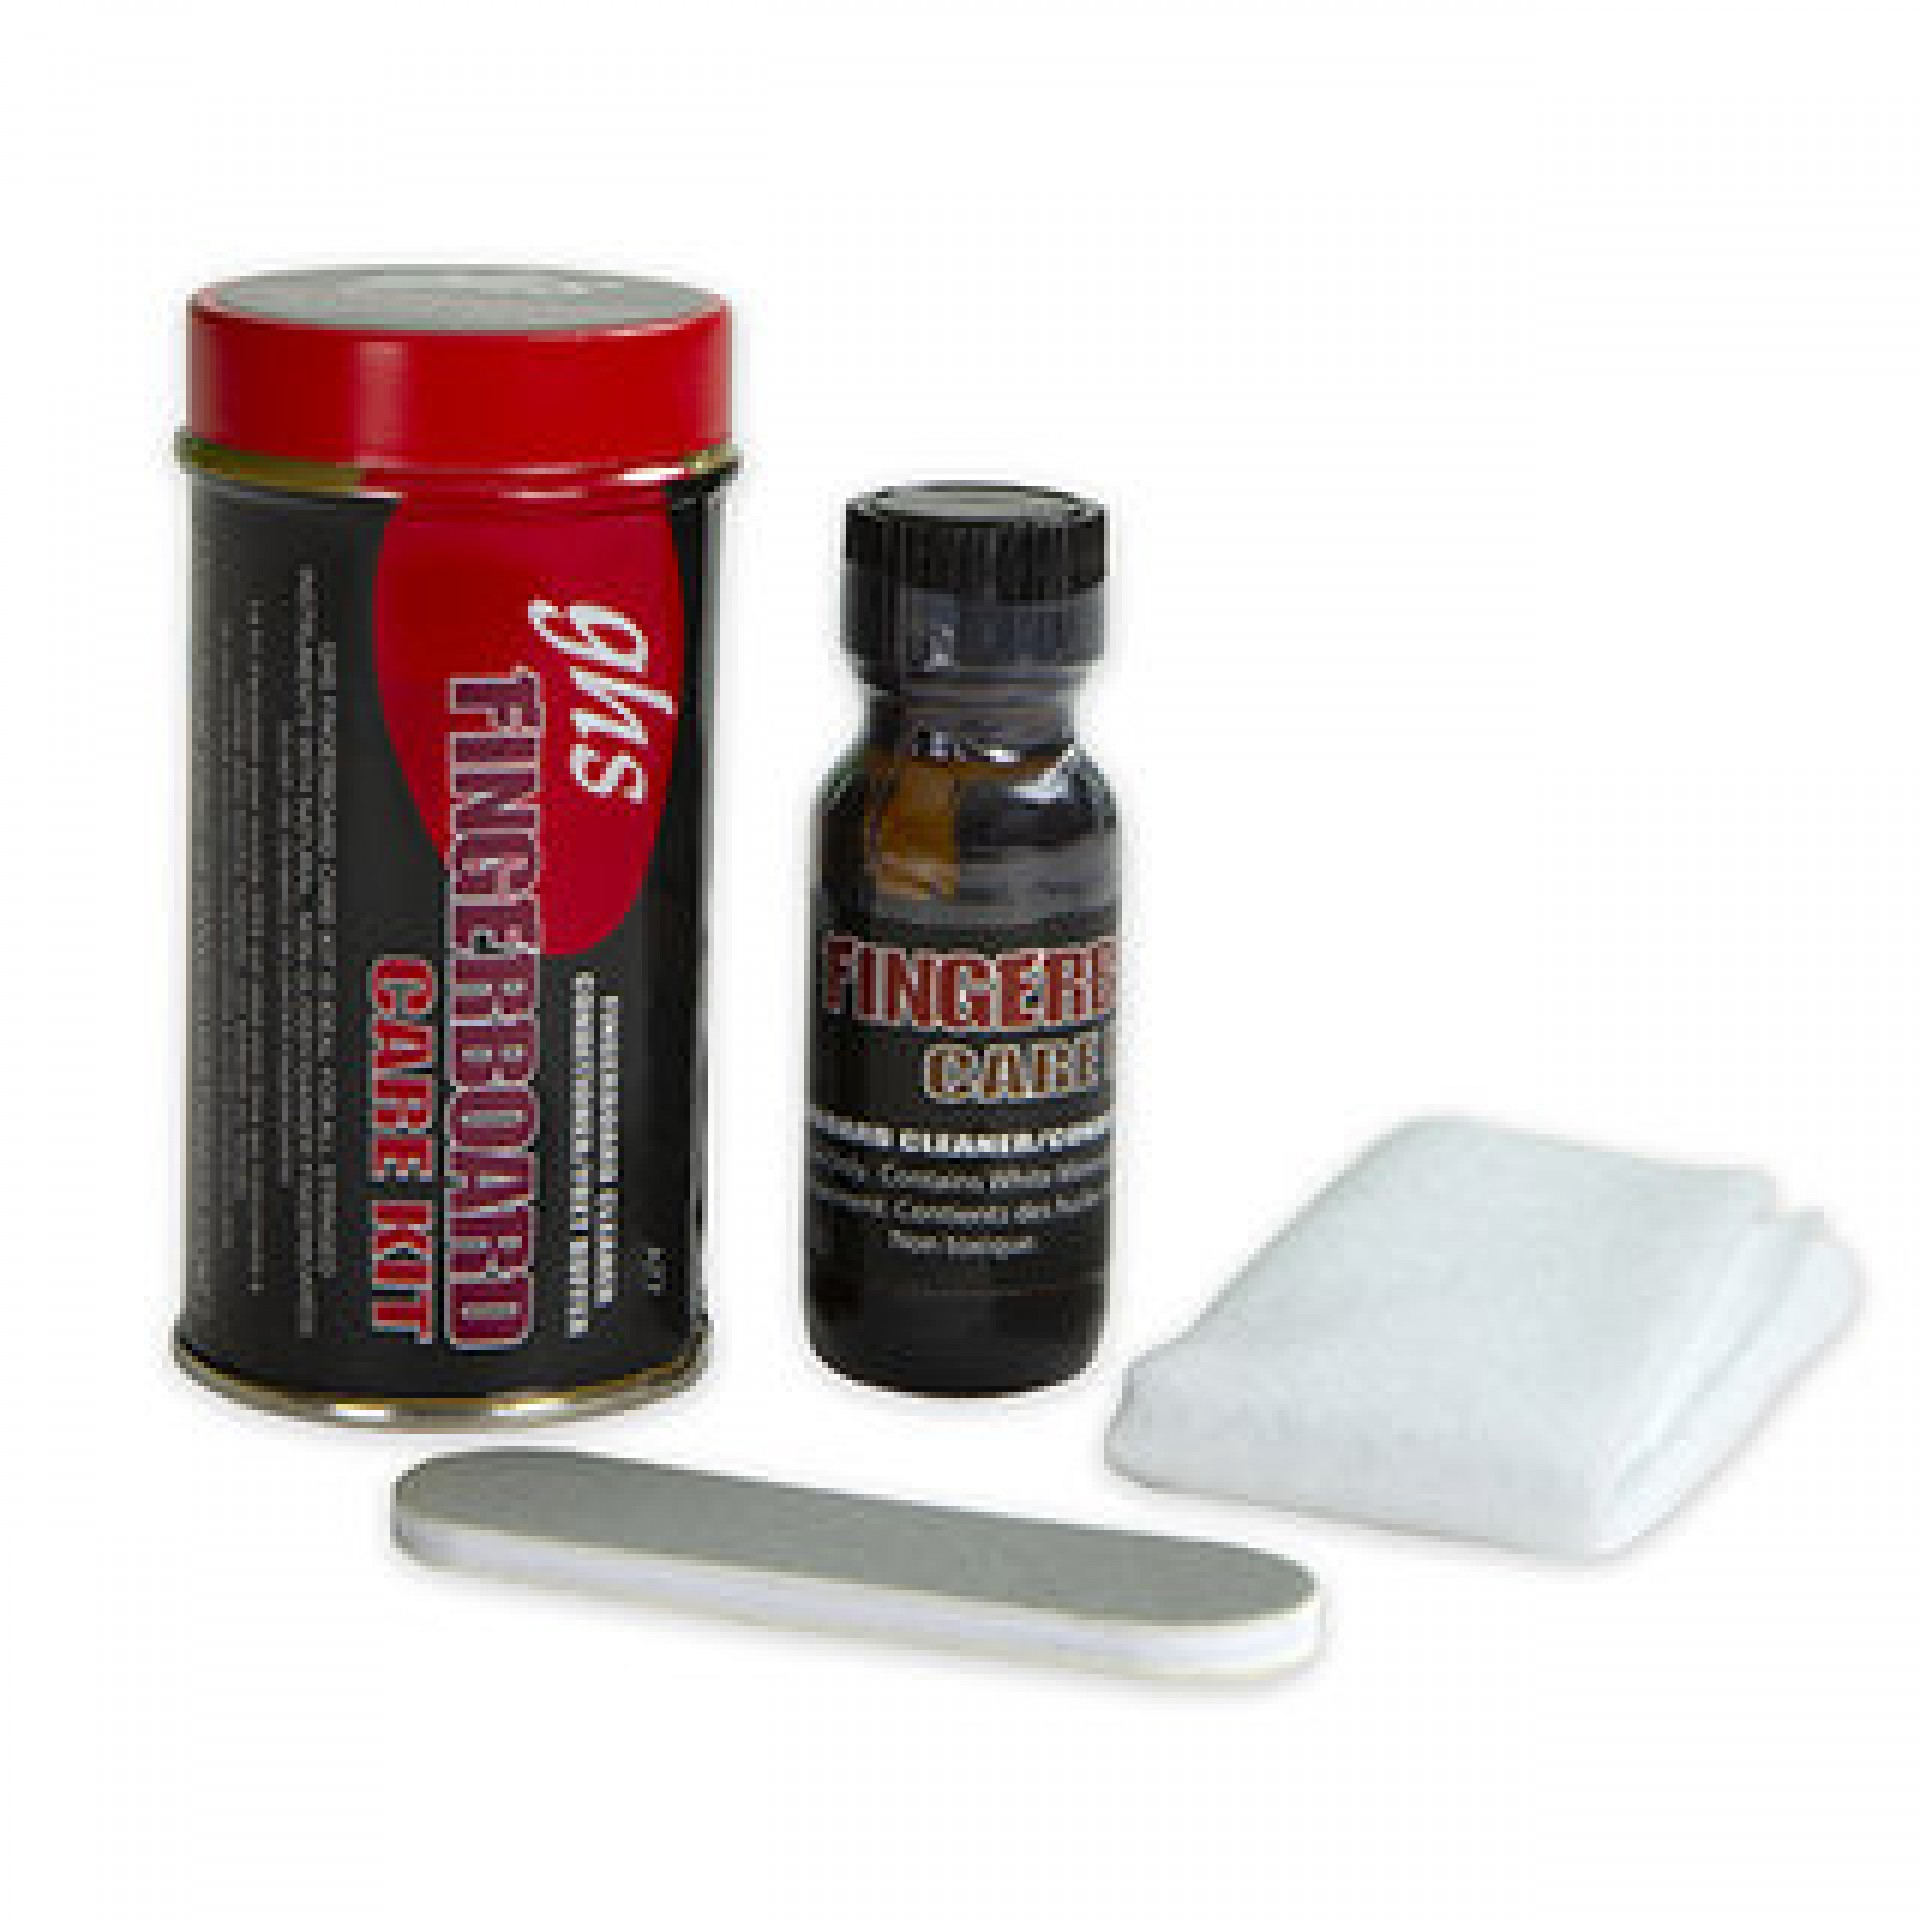 GHS A77 FINGERBOARD CARE KIT